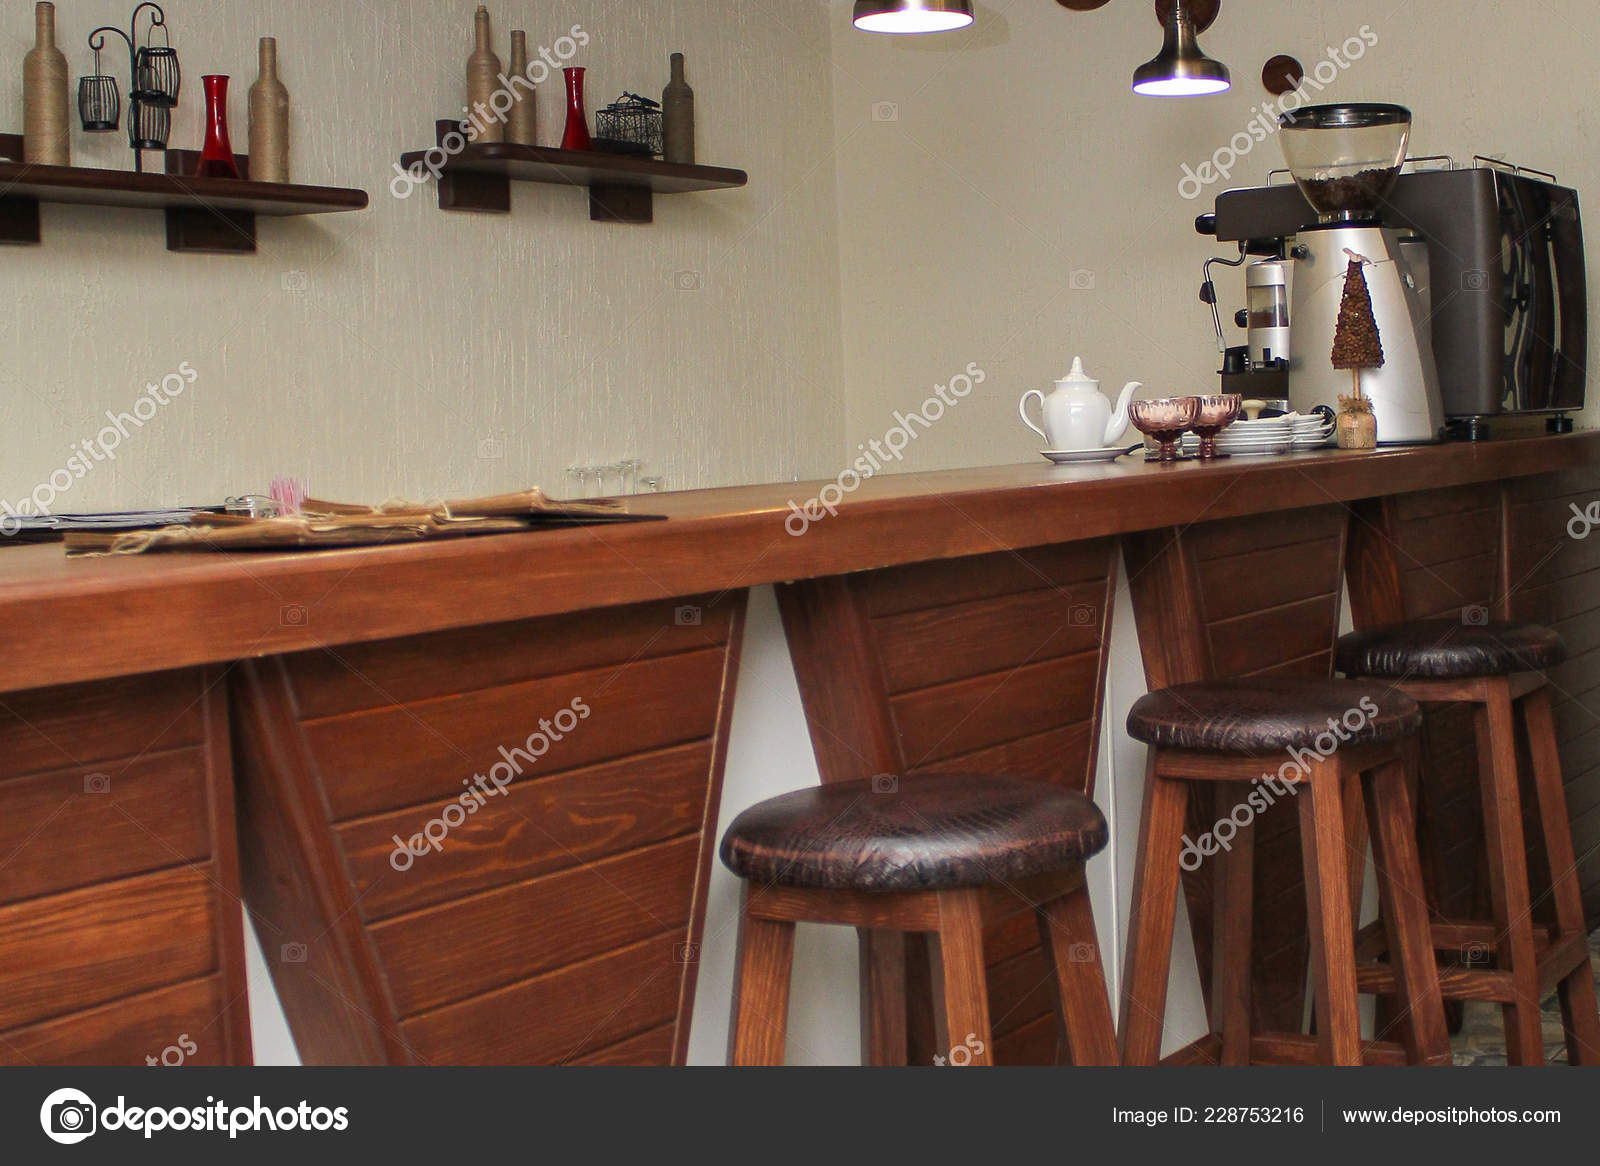 Cafe Interior Design Bar Wooden Chairs Decor Wall Stock Photo C Alisamorus 228753216